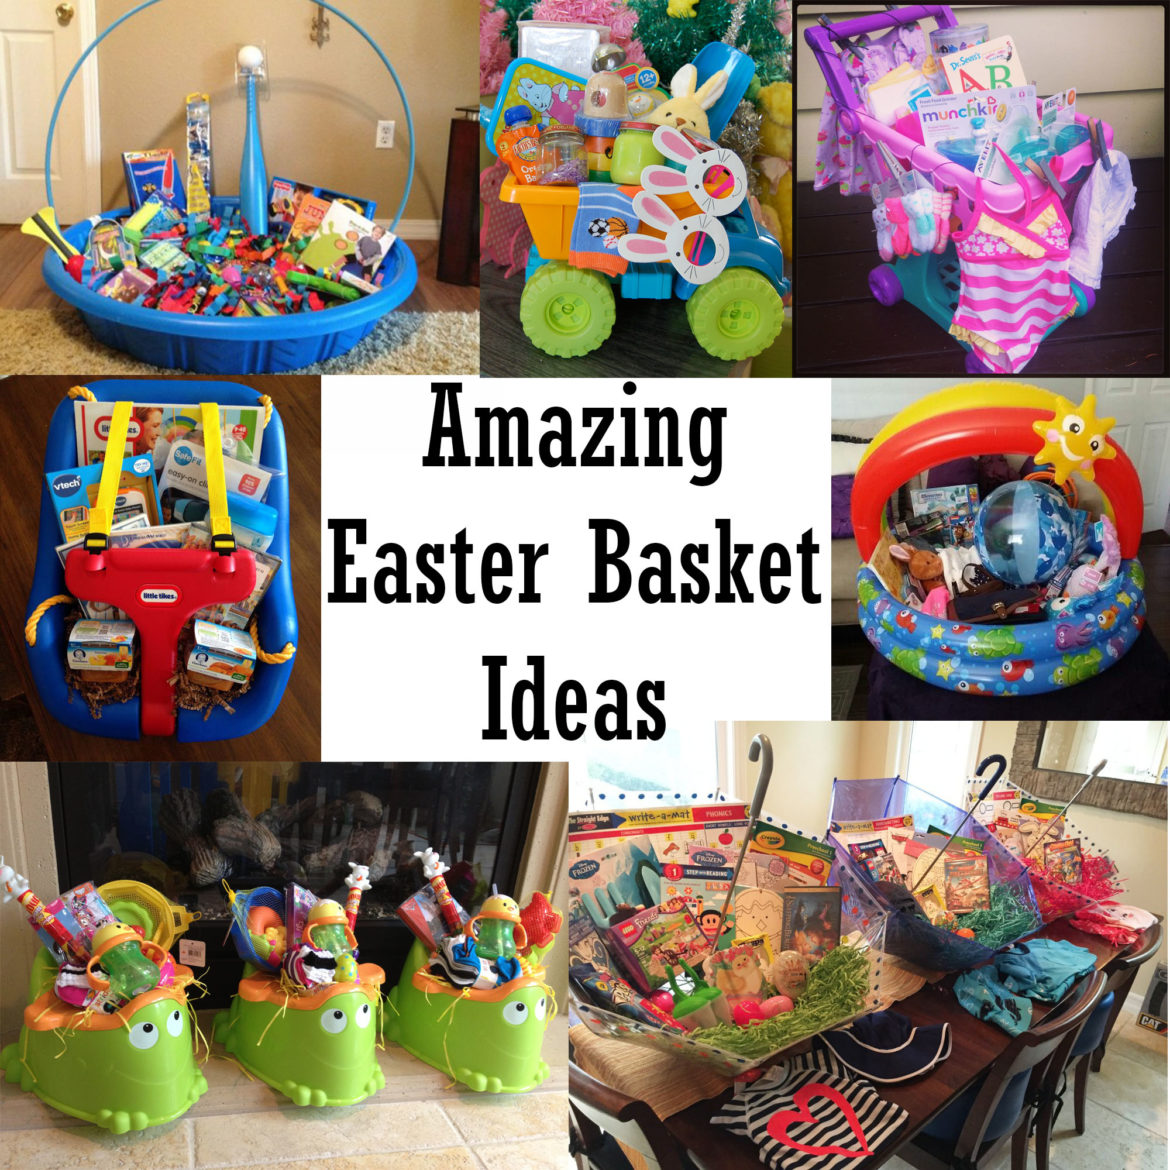 Amazing easter basket ideasg amazing easter basket ideas 8f29d909f5e77db0c7268b65999dfa42 negle Choice Image